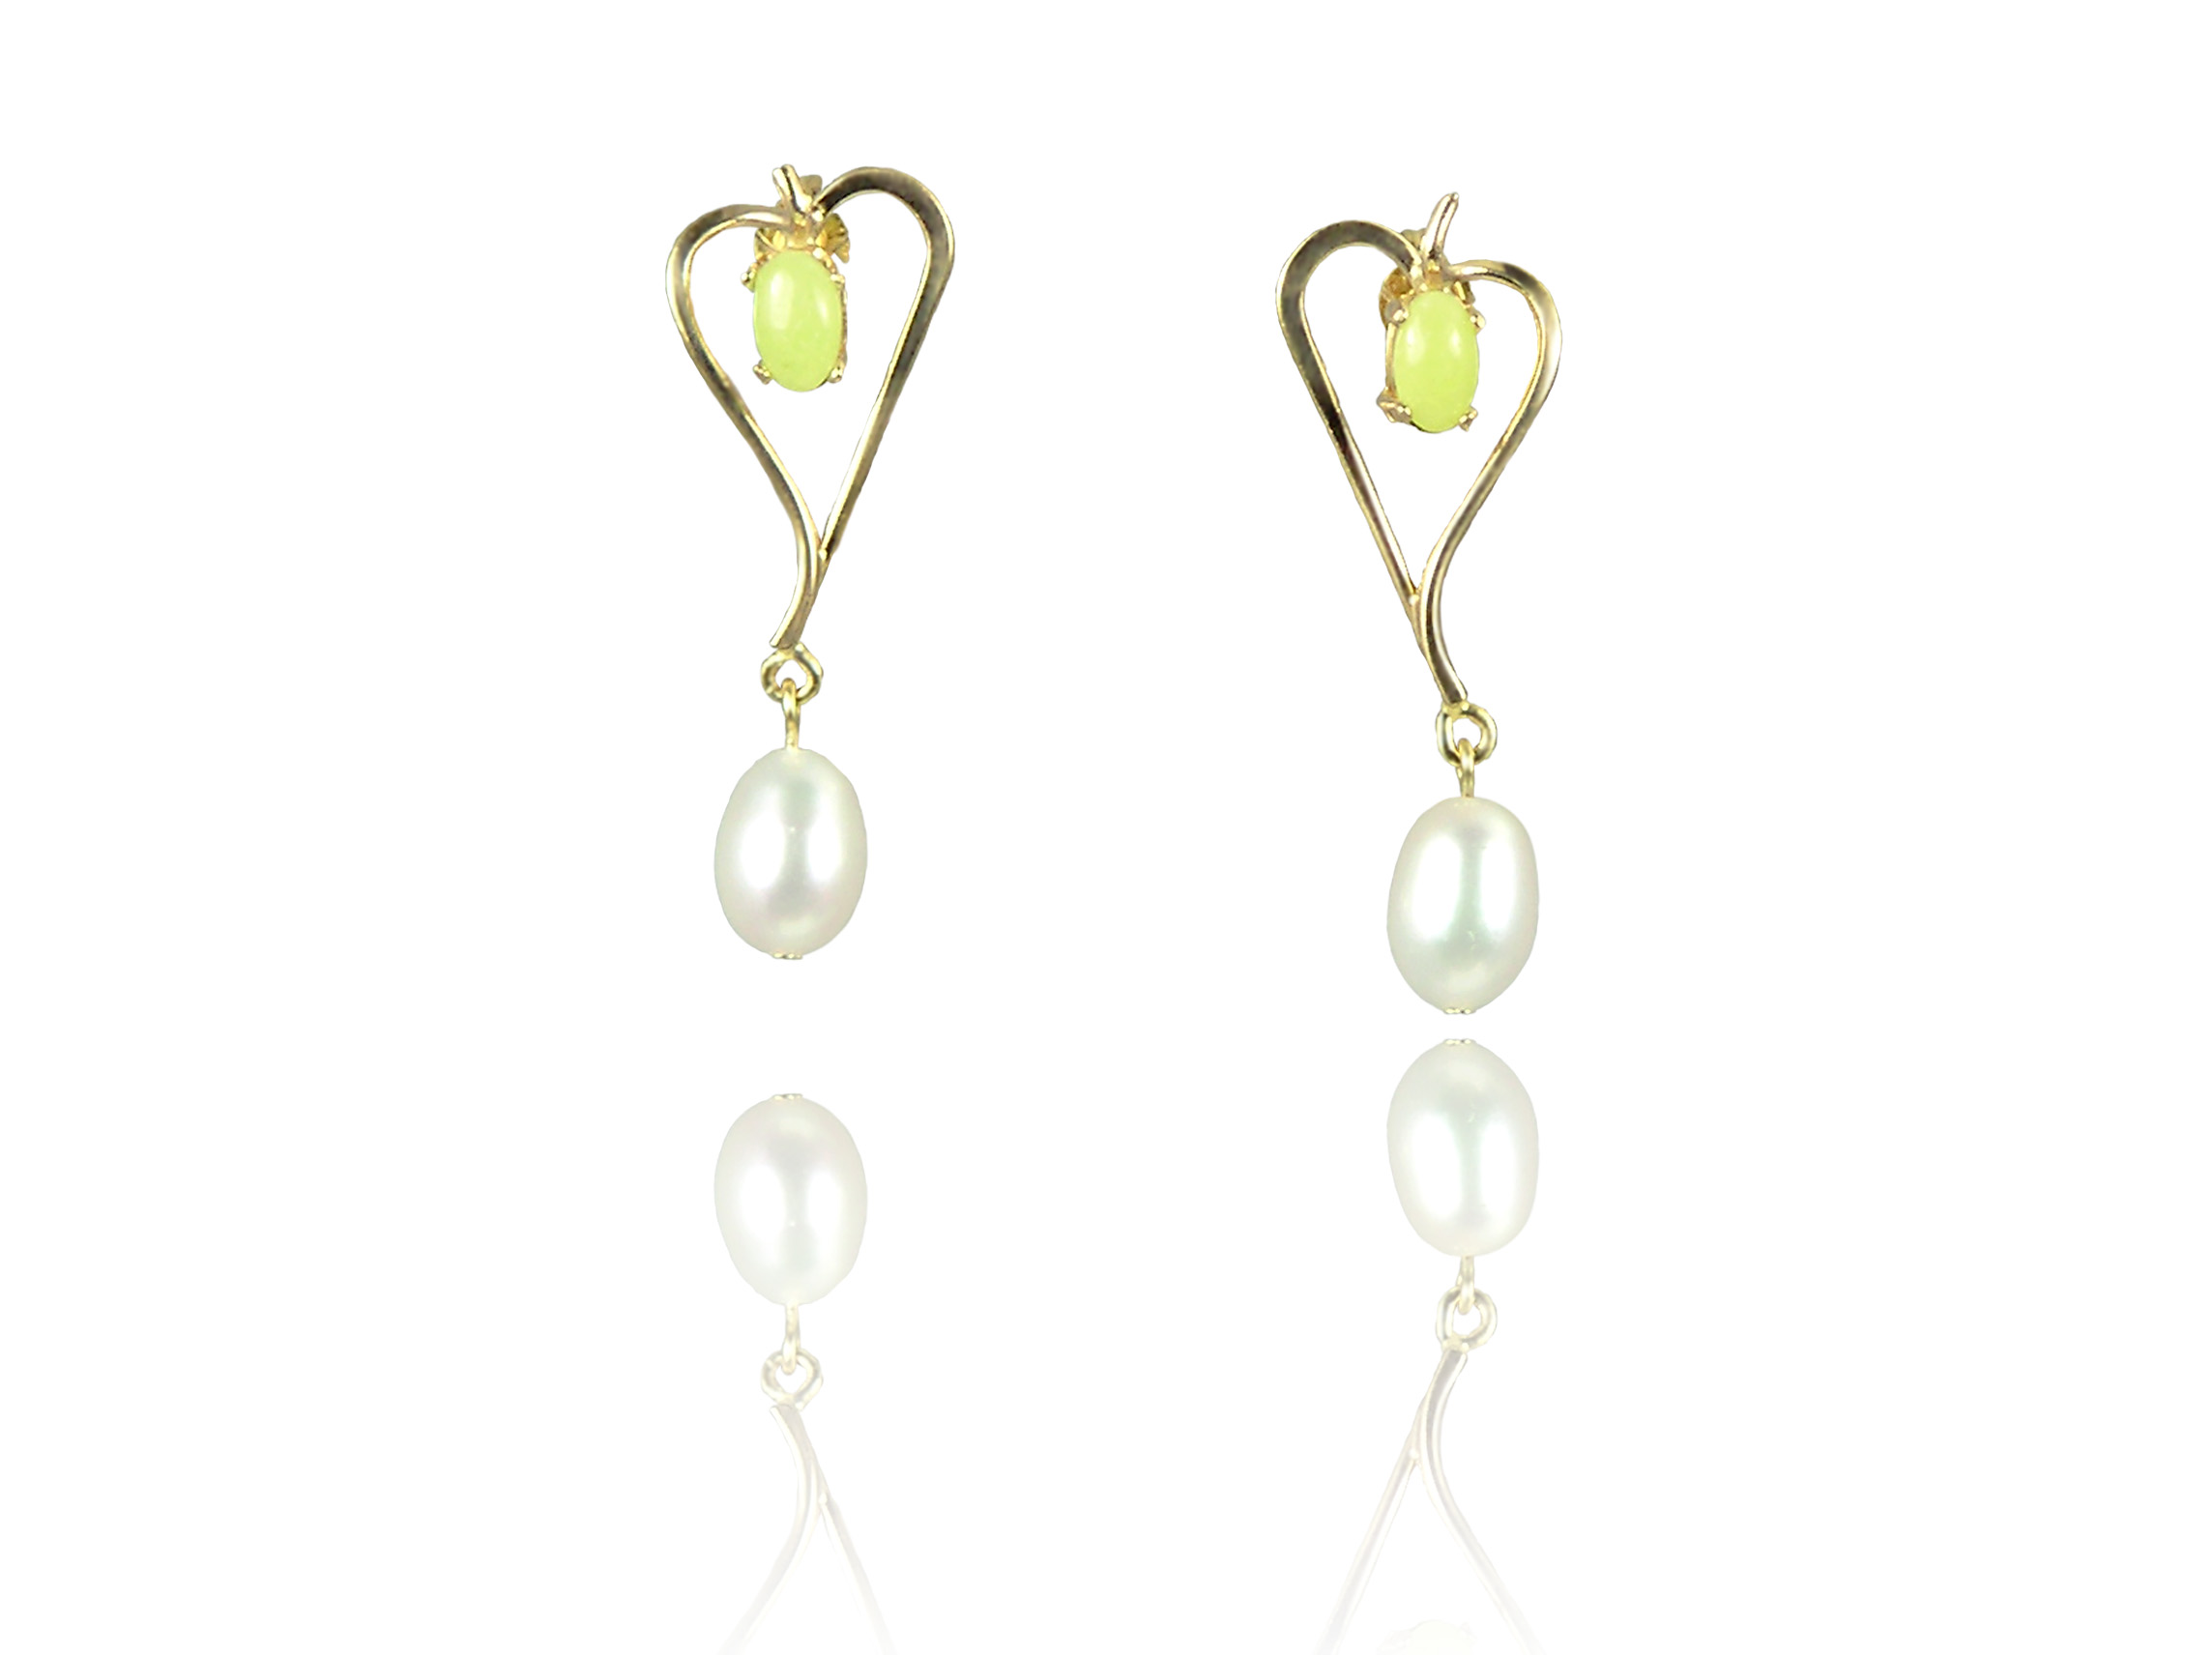 "Idocrase ""Aztec Jade"" and Oval Freshwater Pearl Earrings in 14k Gold"